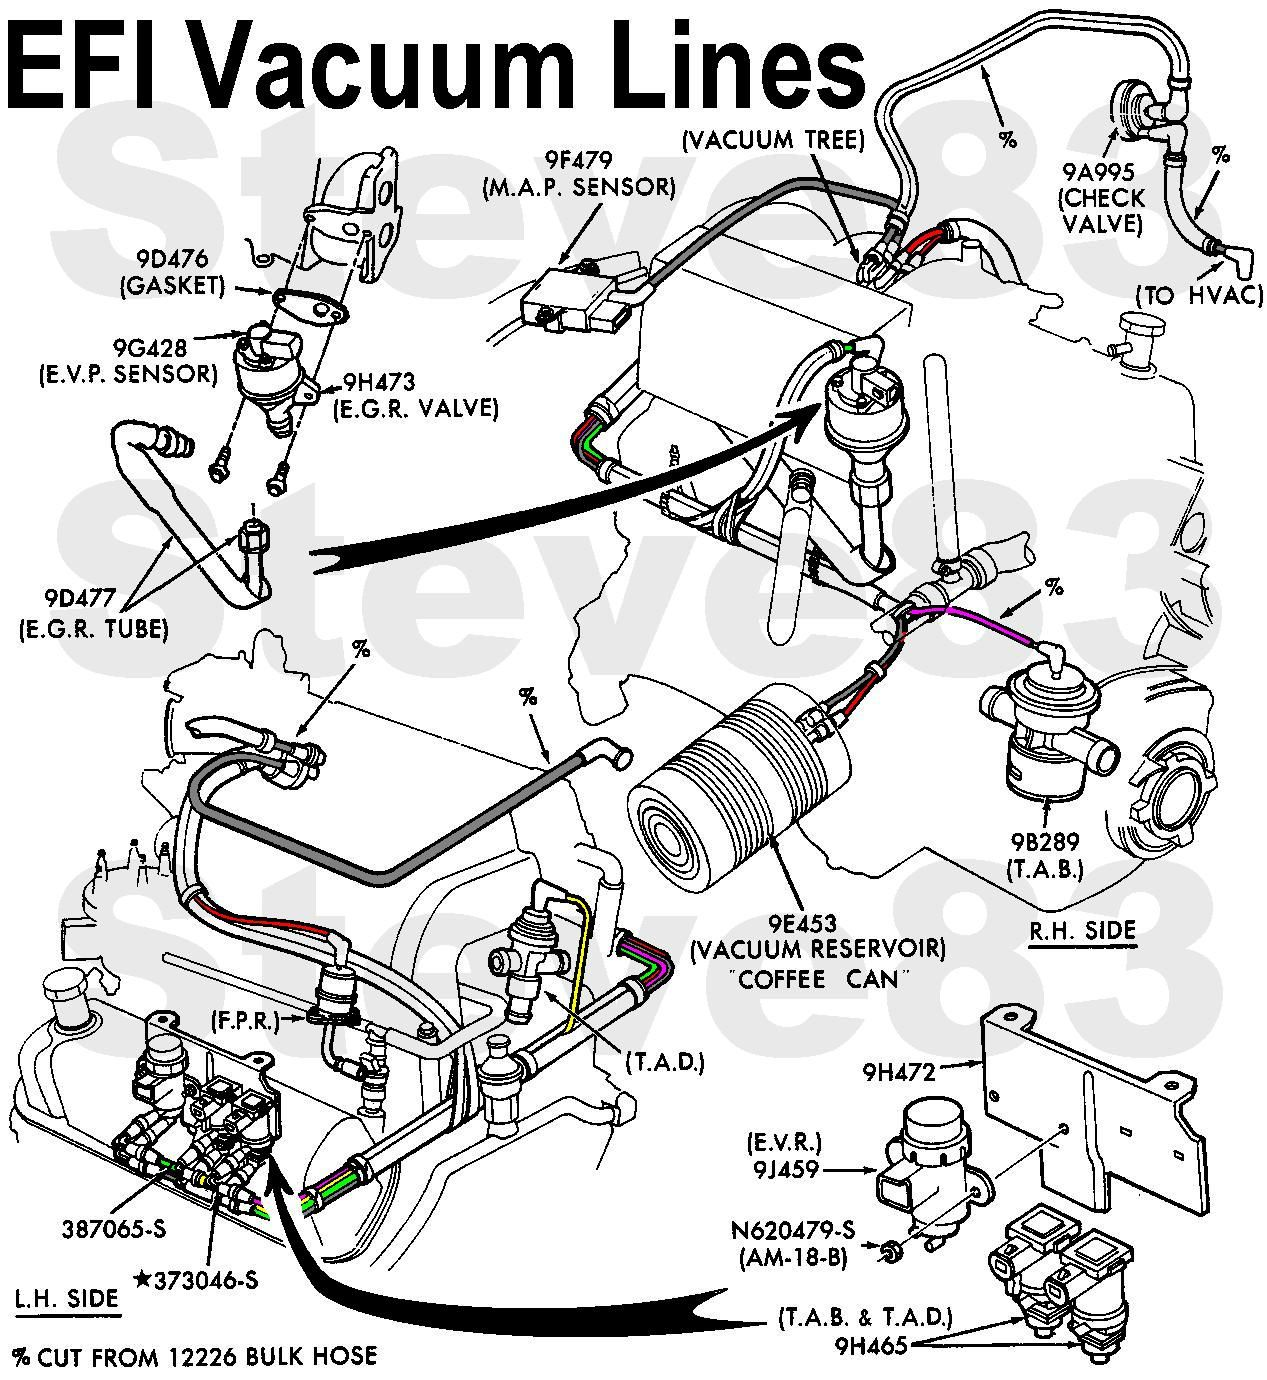 medium resolution of engine bay schematic showing major electrical ground points for 4 0l jeep cherokee engines jeep jeep jeep cherokee 2001 jeep cherokee